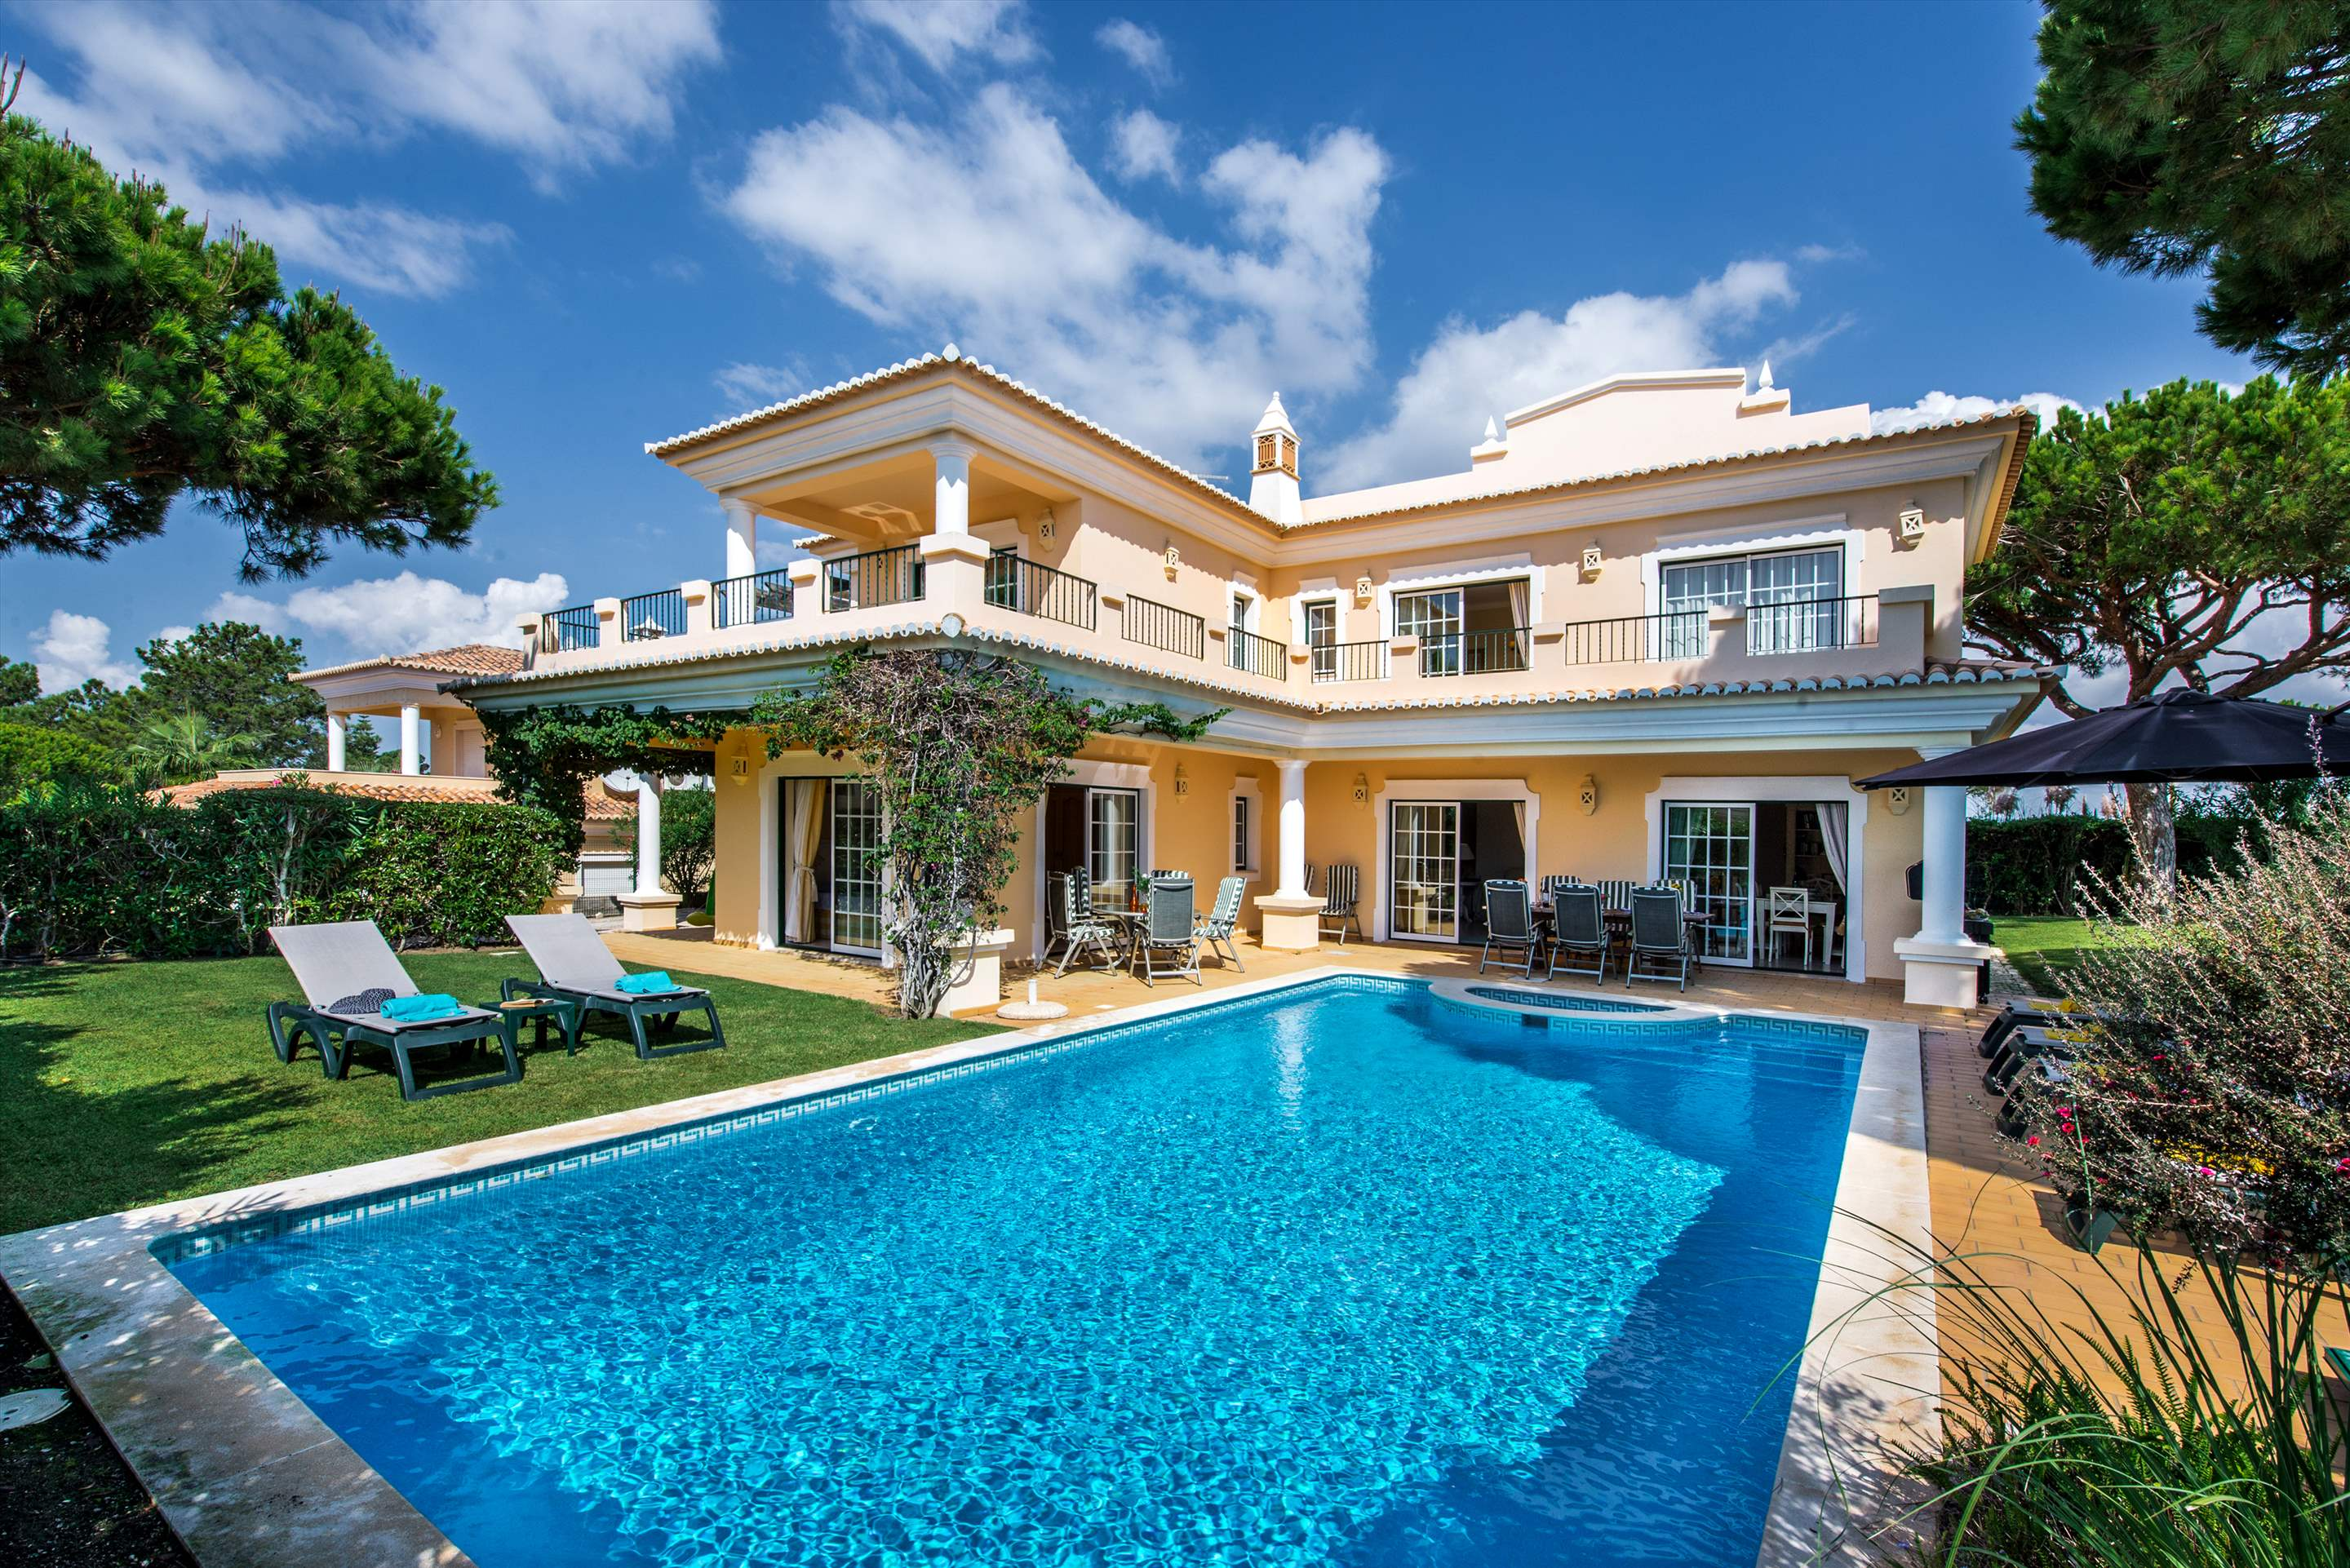 Casa da Encosta, 4 bedroom villa in Vale do Lobo, Algarve